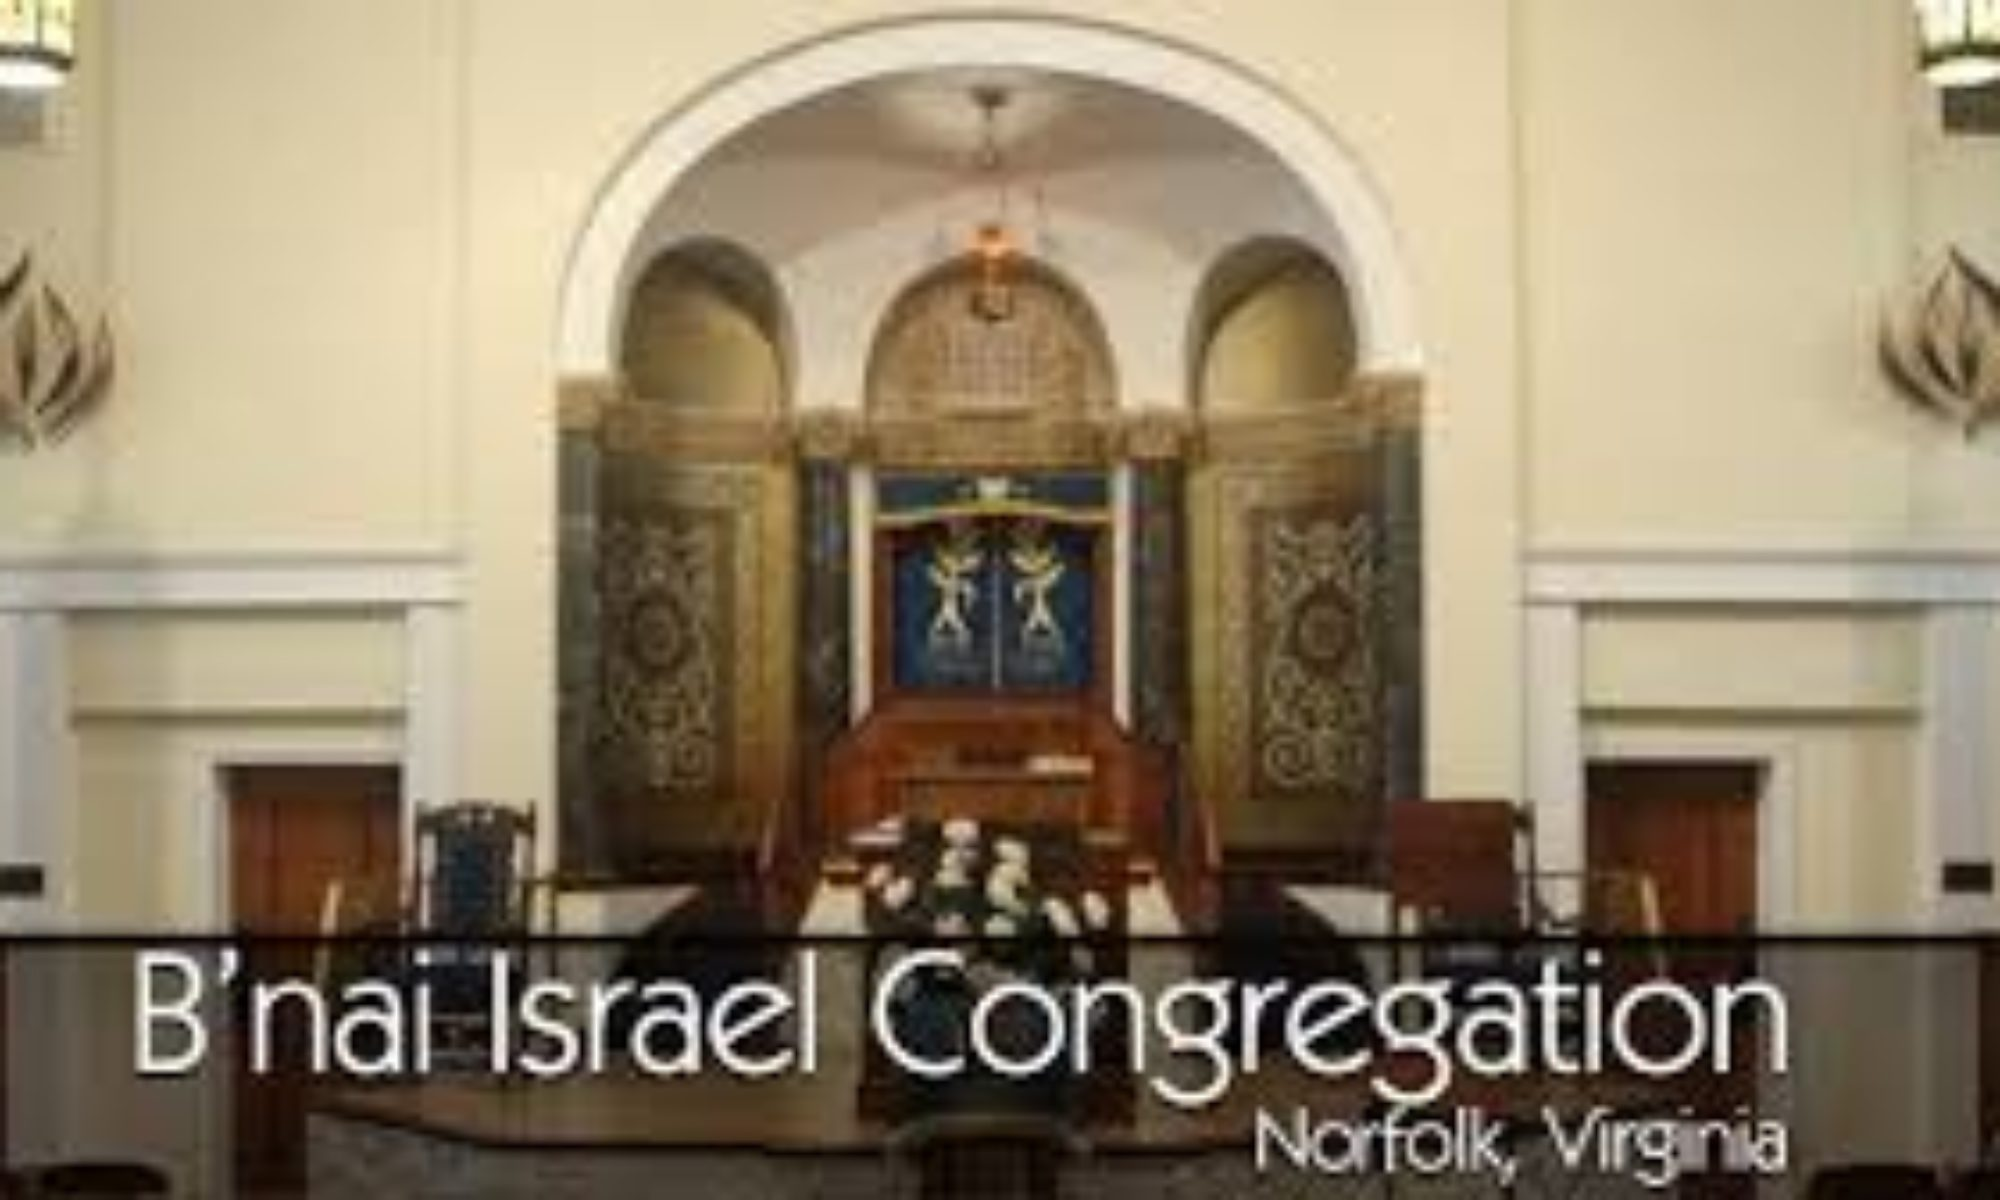 B'nai Israel Congregation, Norfolk, VA